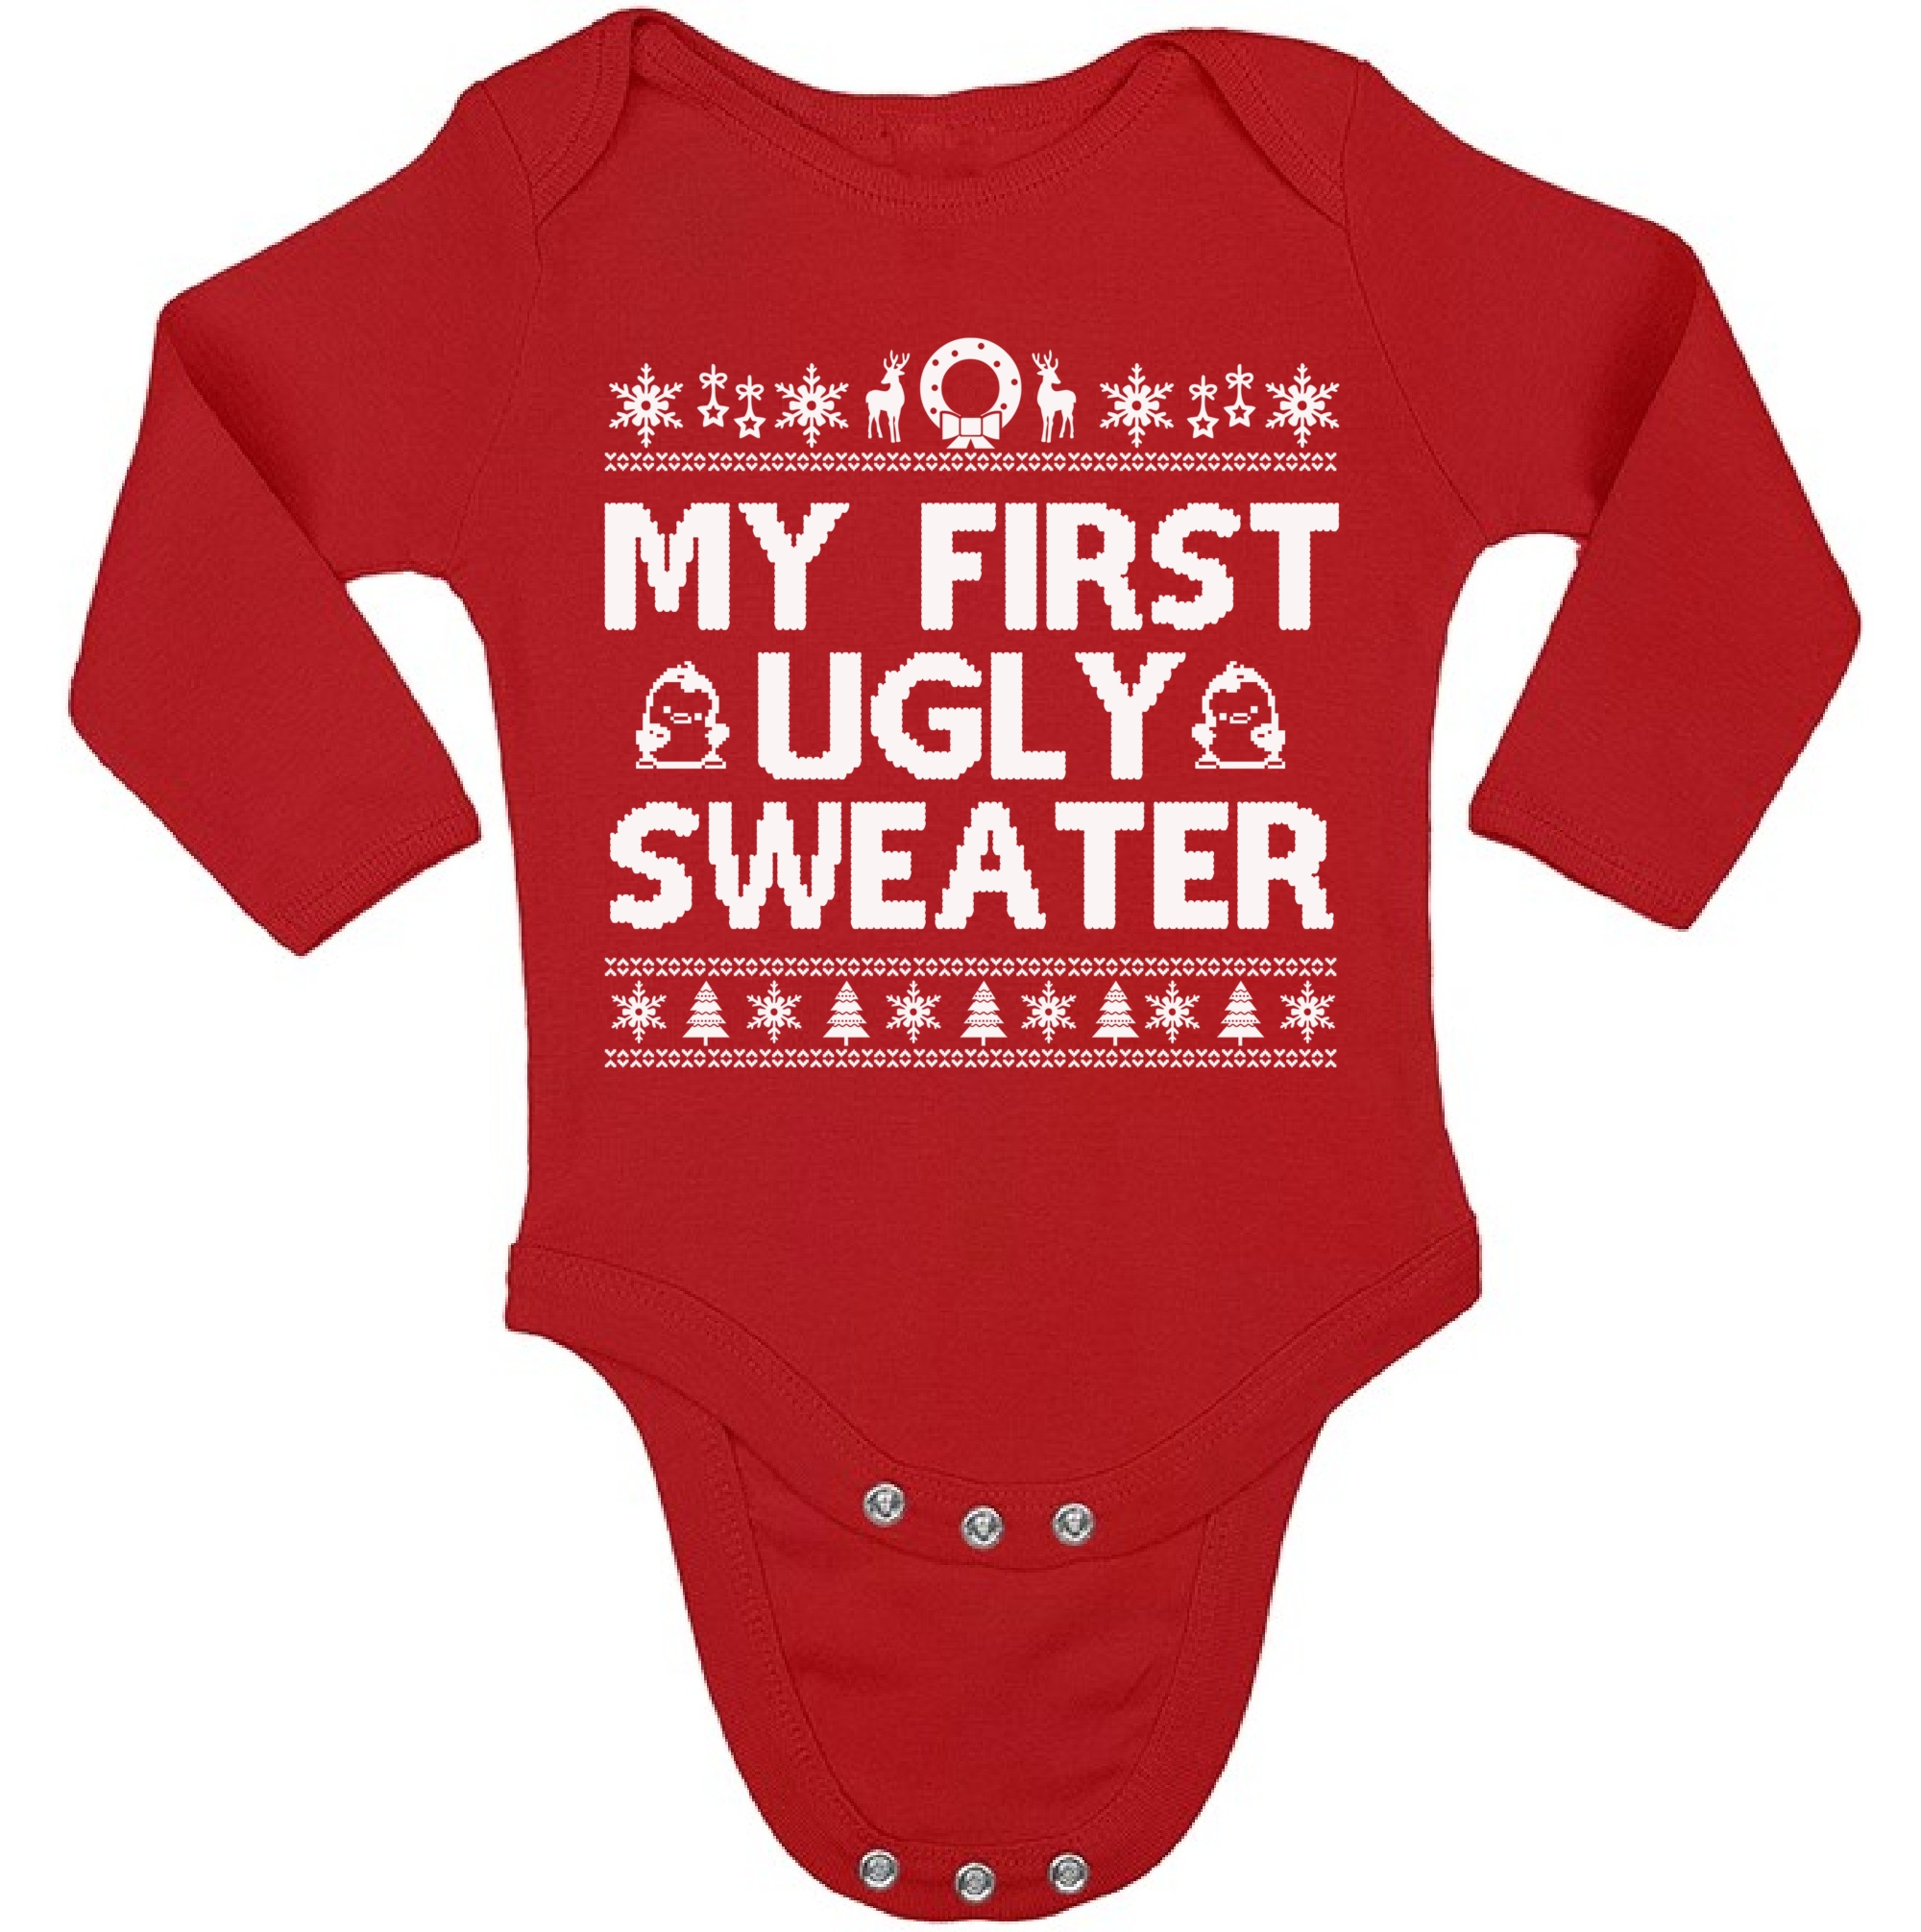 Christmas-Baby-My-First-Ugly-Sweater-Bodysuit-for-